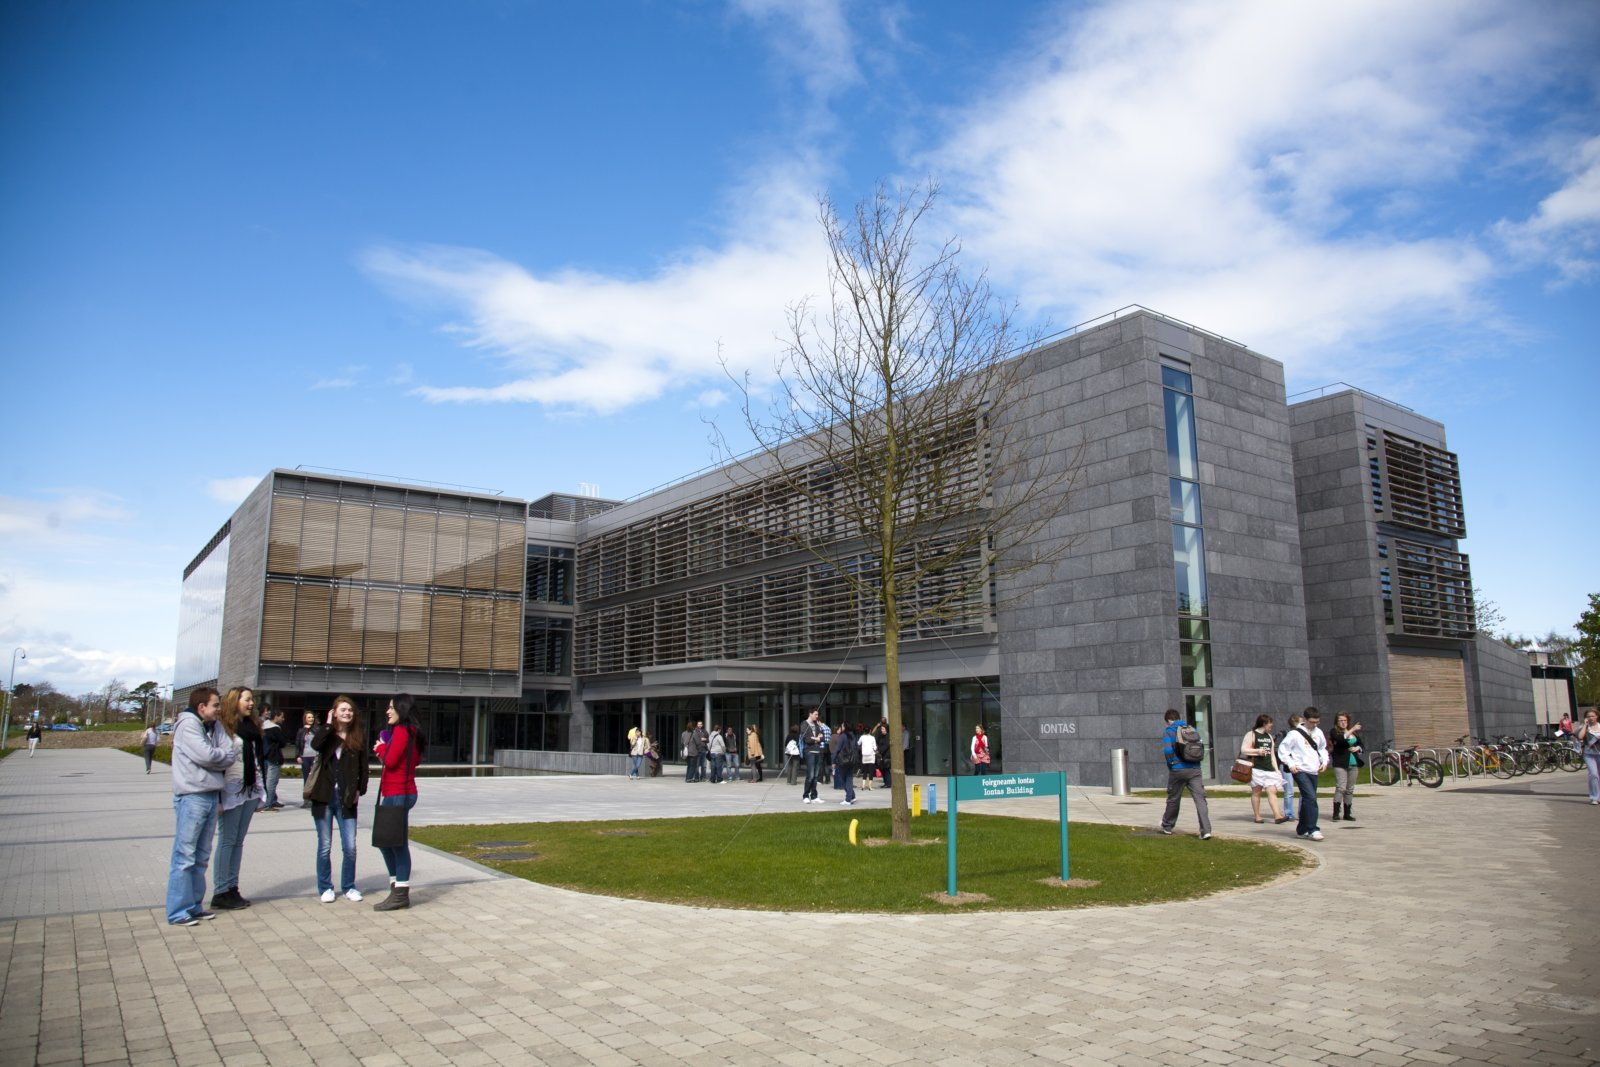 thesis ireland Welcome to the thesis centre the bookbinders of choice in ireland est 1989 why choose us we've offered the highest quality thesis and dissertation binding in ireland for almost 30 years.